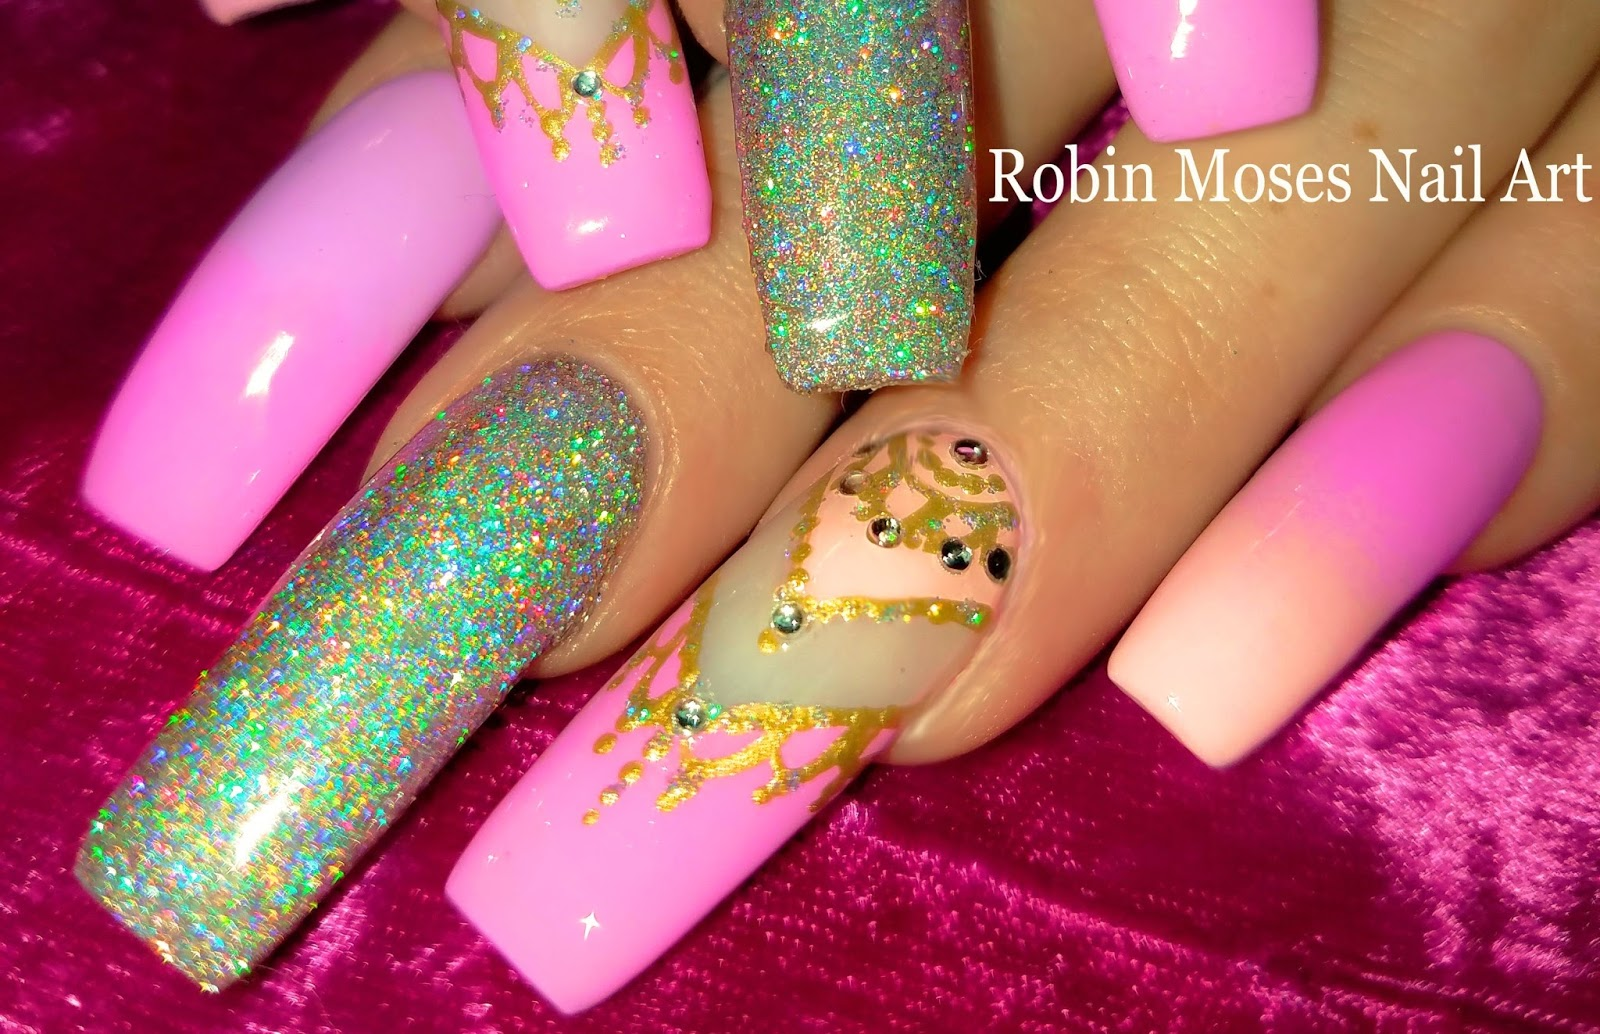 Robin moses nail art lush holographic glitter nail with pastel lush holographic glitter nail with pastel gradient and henna accent nails design prinsesfo Gallery